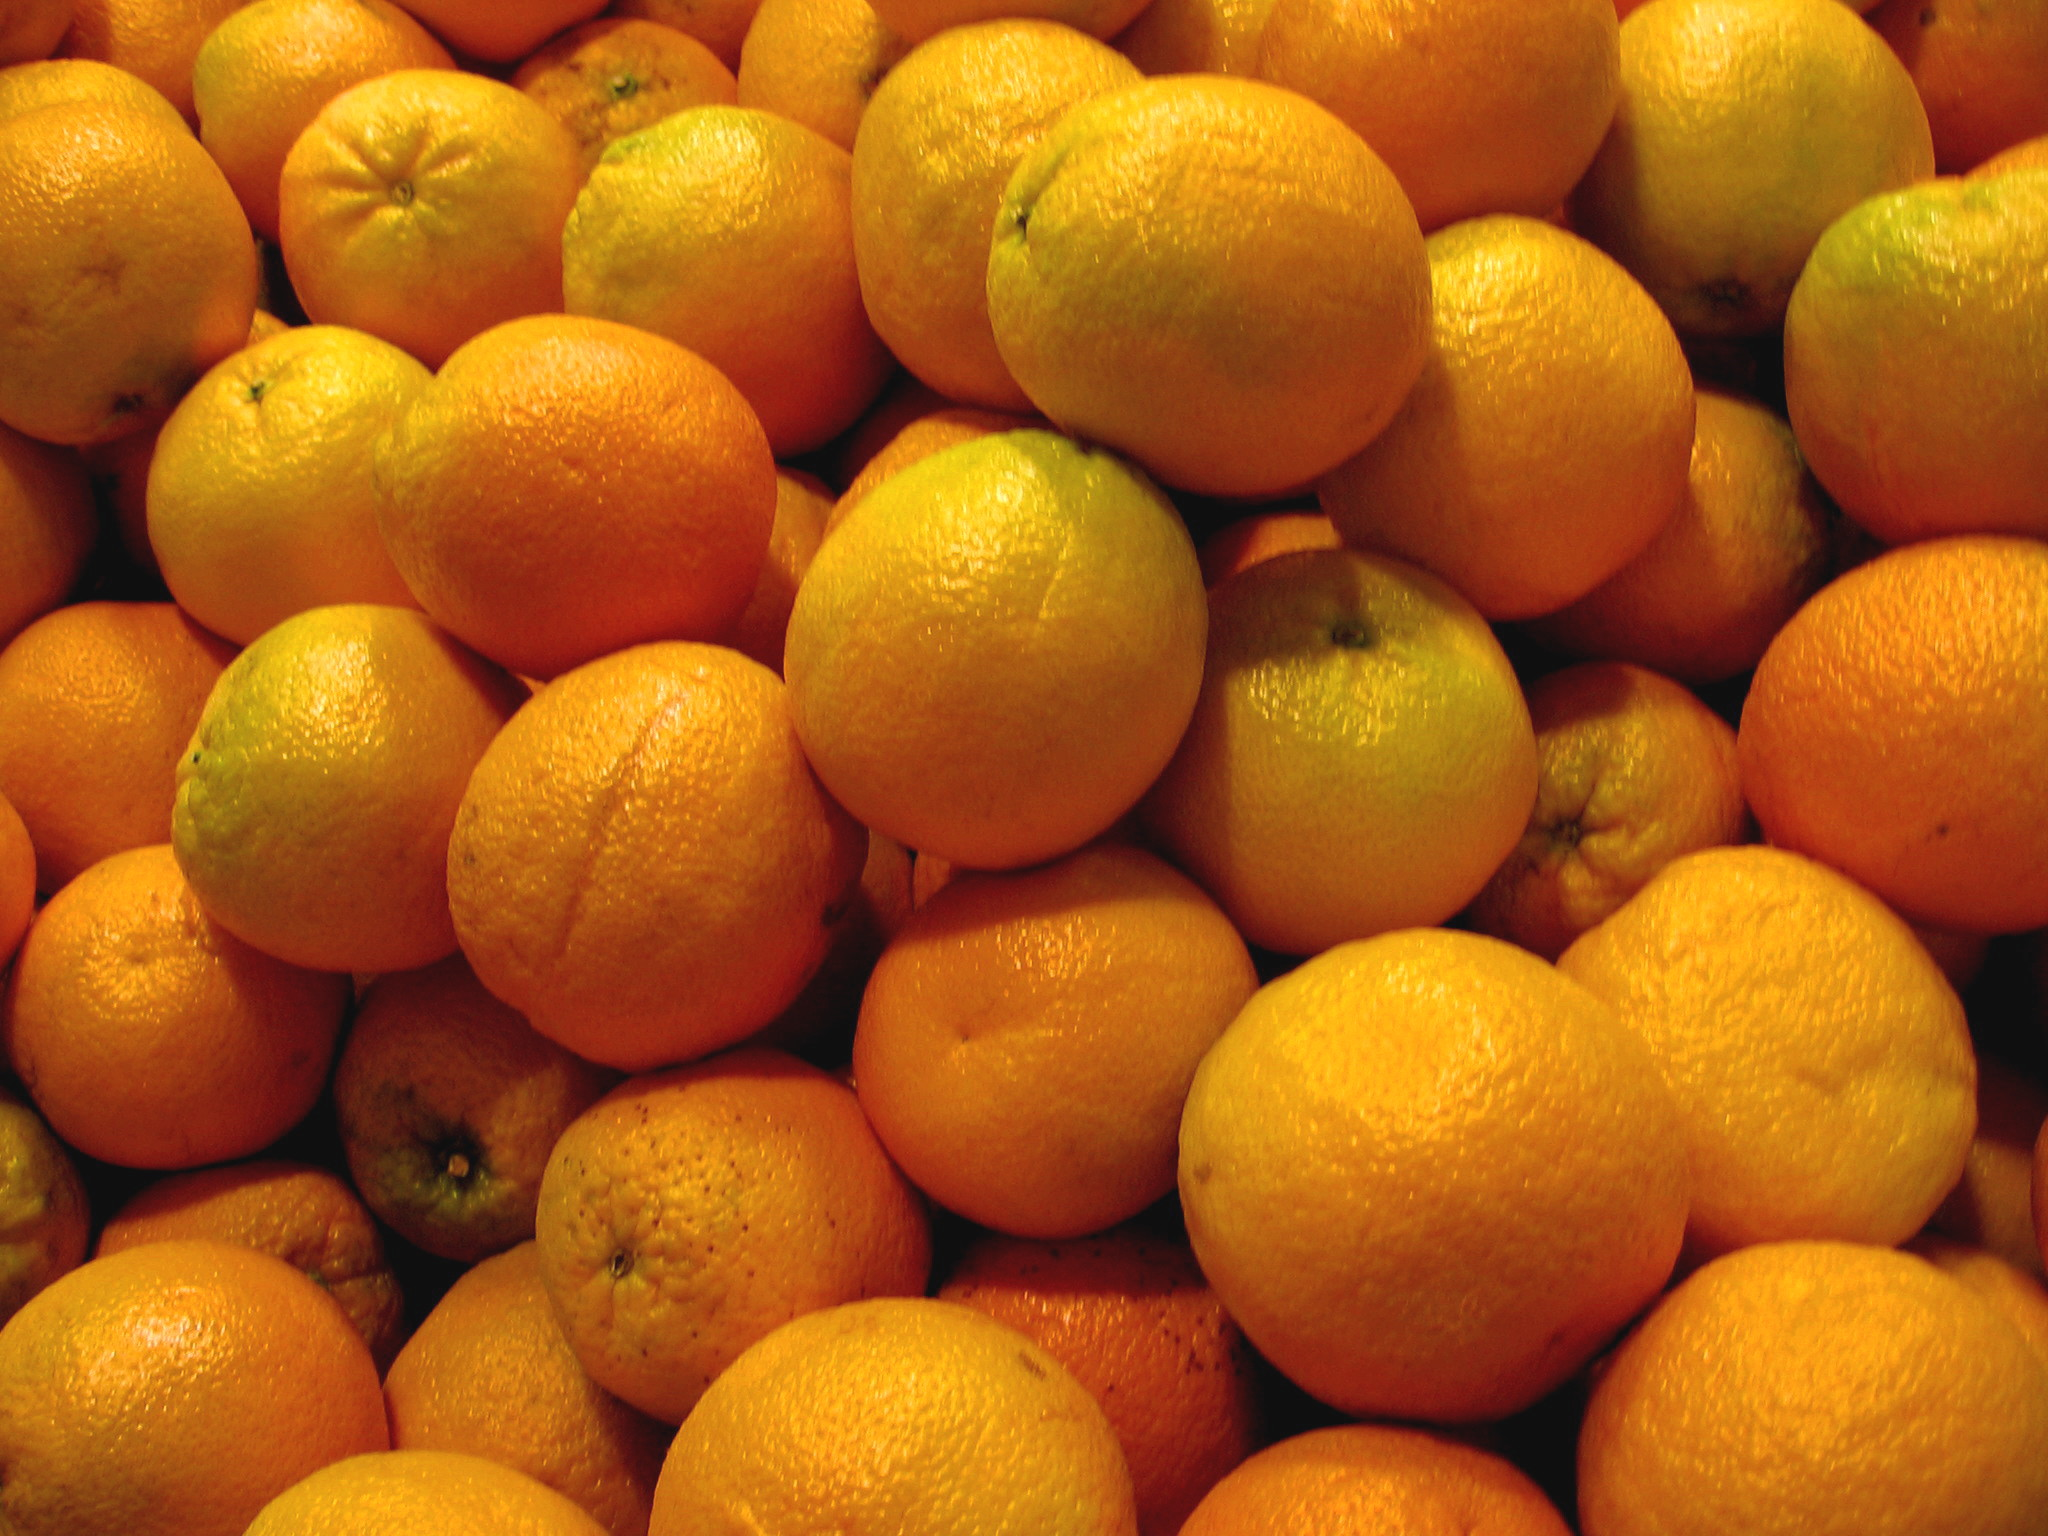 Pile_of_Oranges